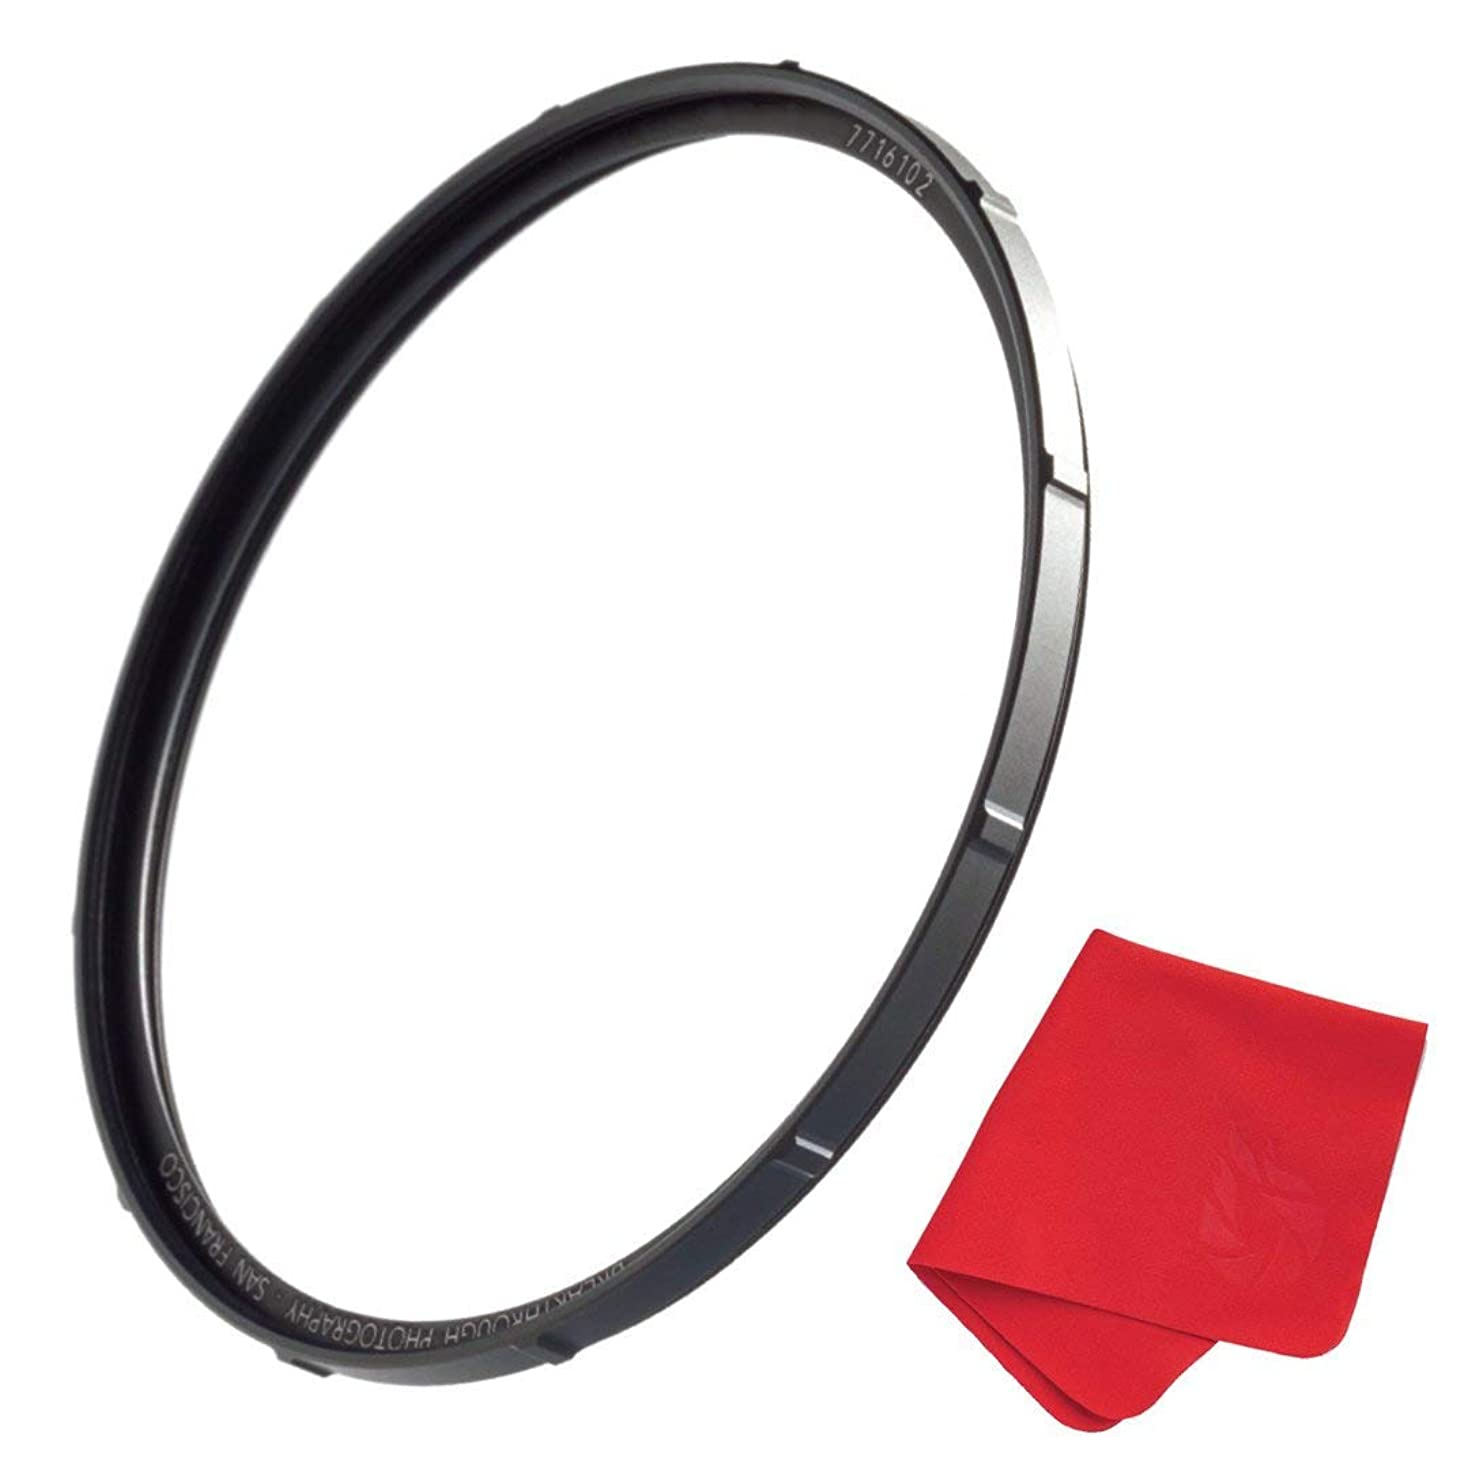 62mm X1 UV Filter for Camera Lenses - Ultraviolet Protection Photography Filter with Lens Cloth - MRC4, Ultra-Slim, 25 Year Support, Weather-Sealed by Breakthrough Photography